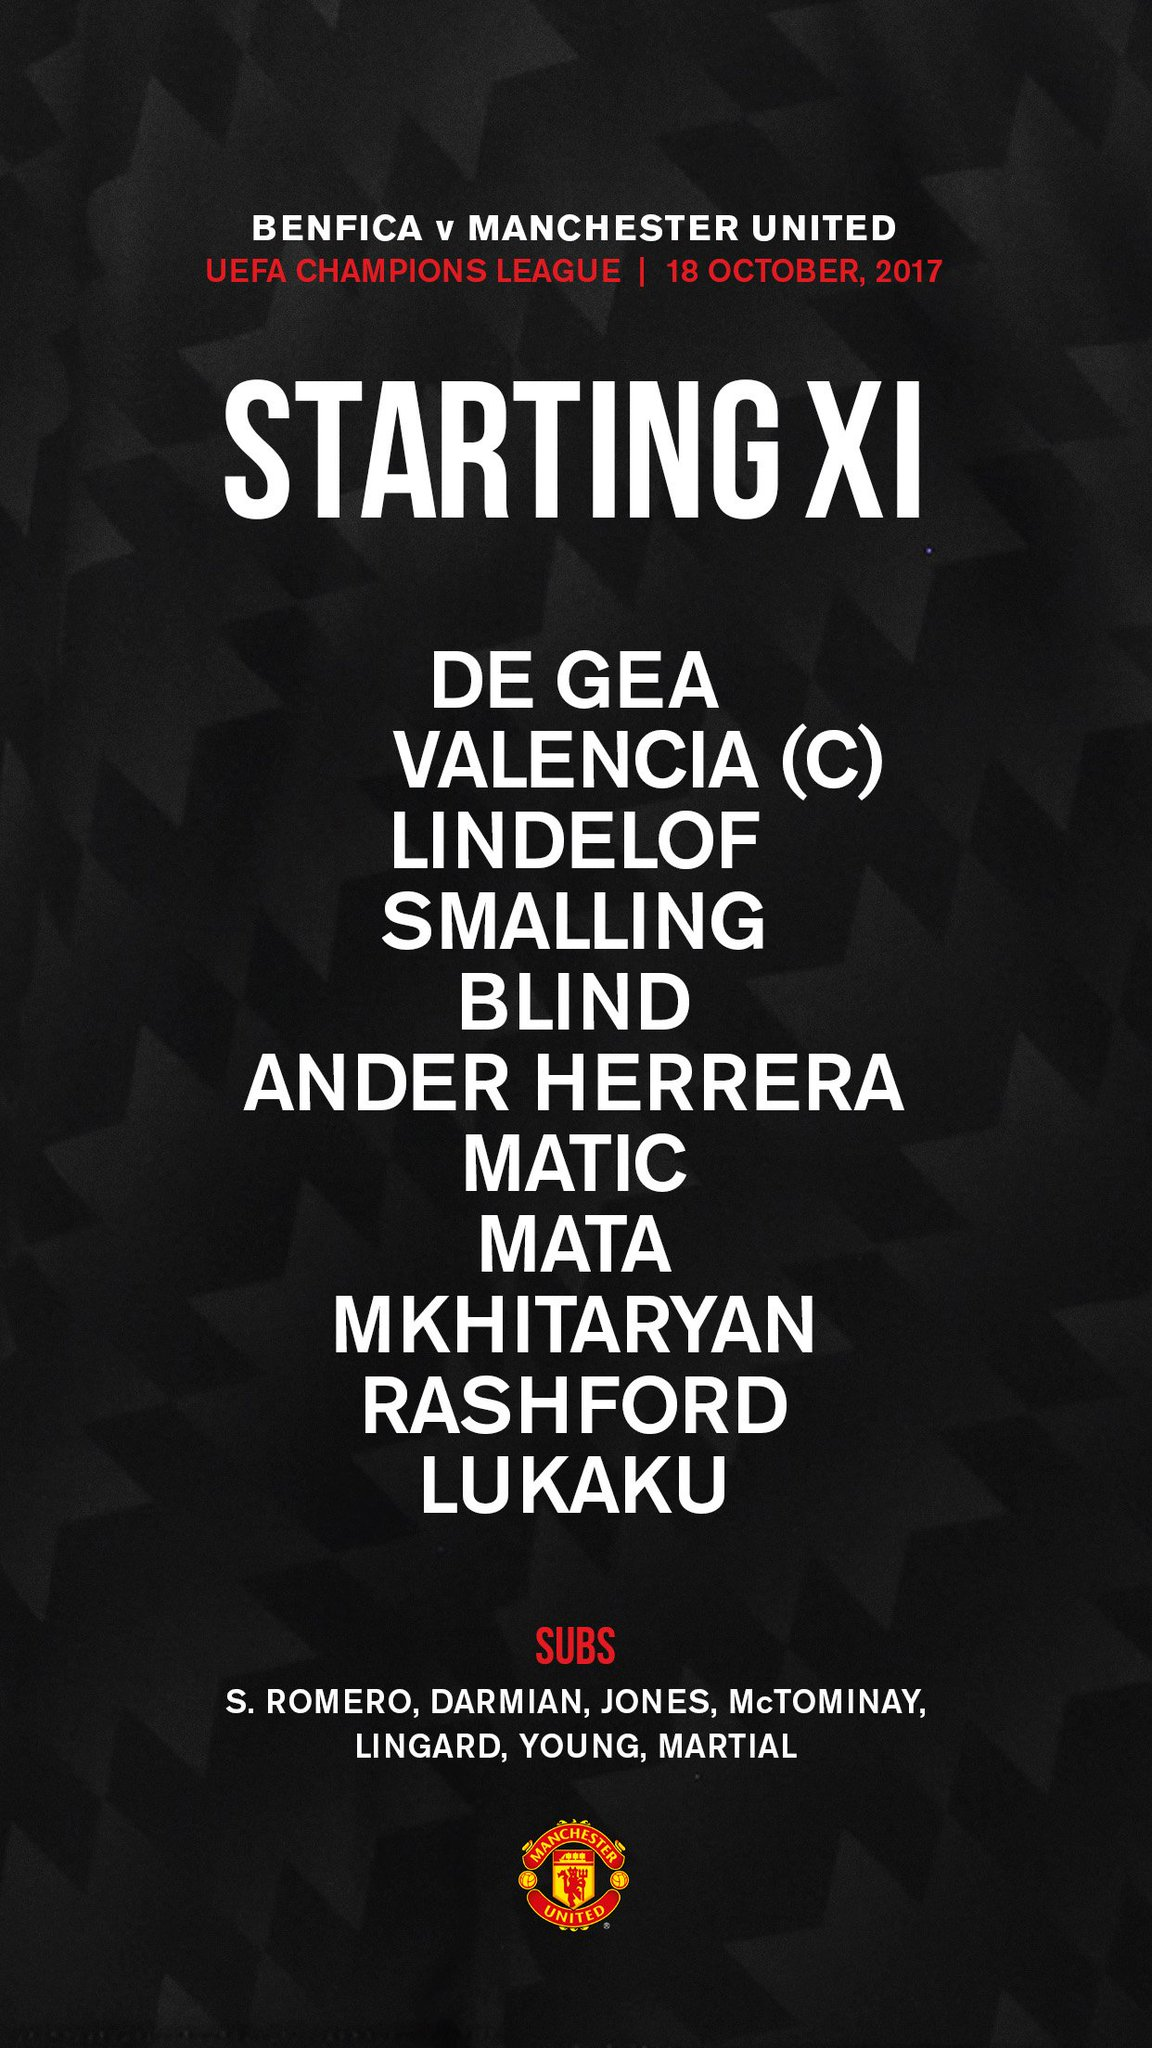 Here's the #MUFC team to face Benfica in tonight's #UCL game... https://t.co/Z8Mf48T8bp